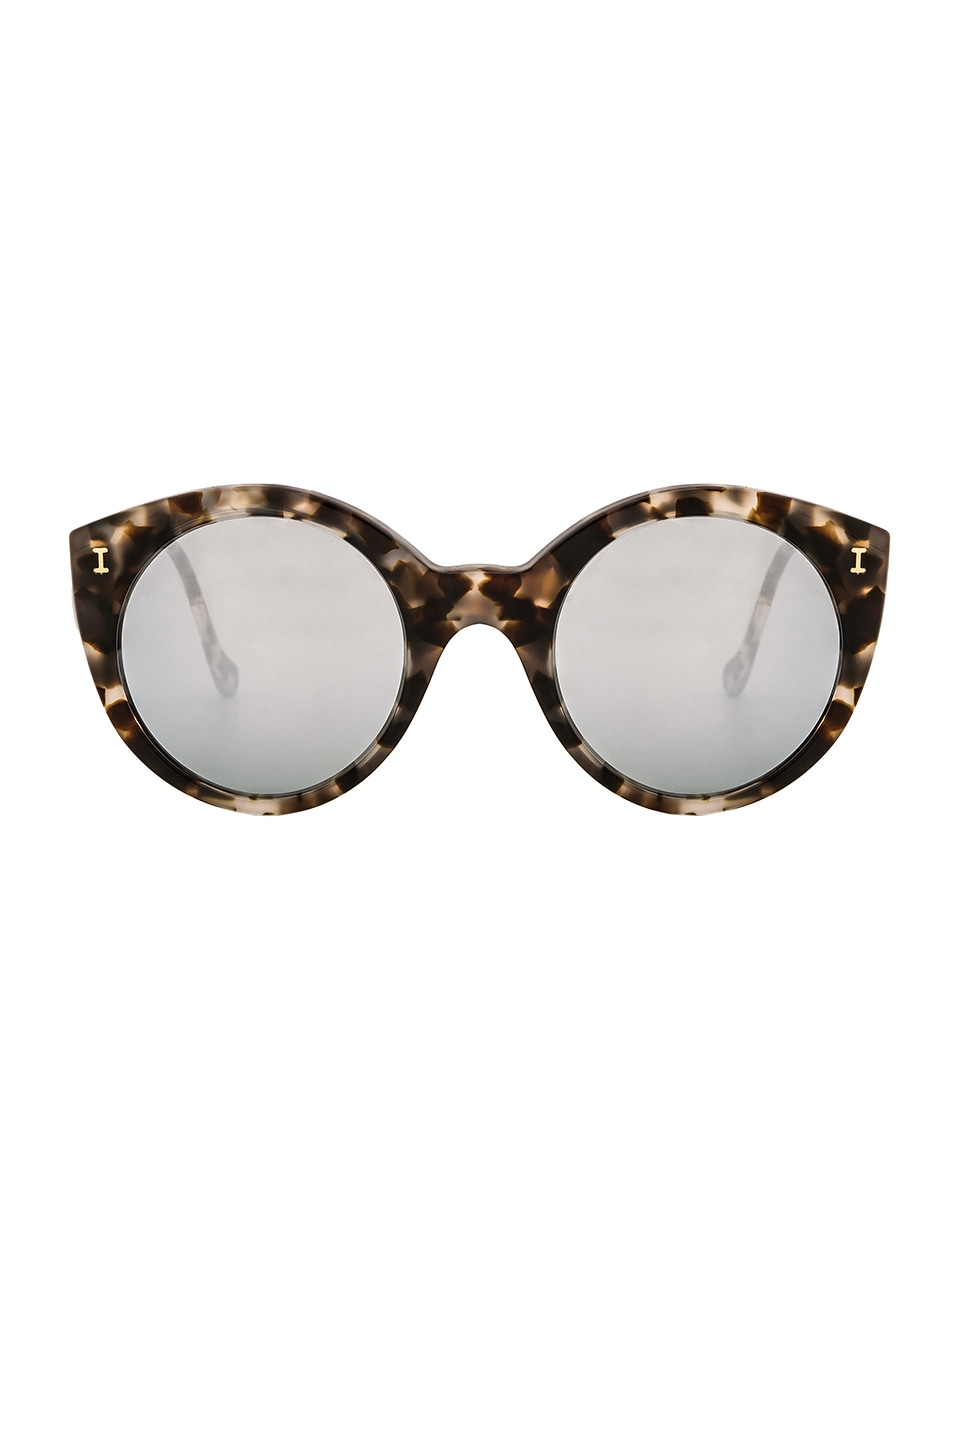 illesteva Palm Beach in White Tortoise & Silver Mirror